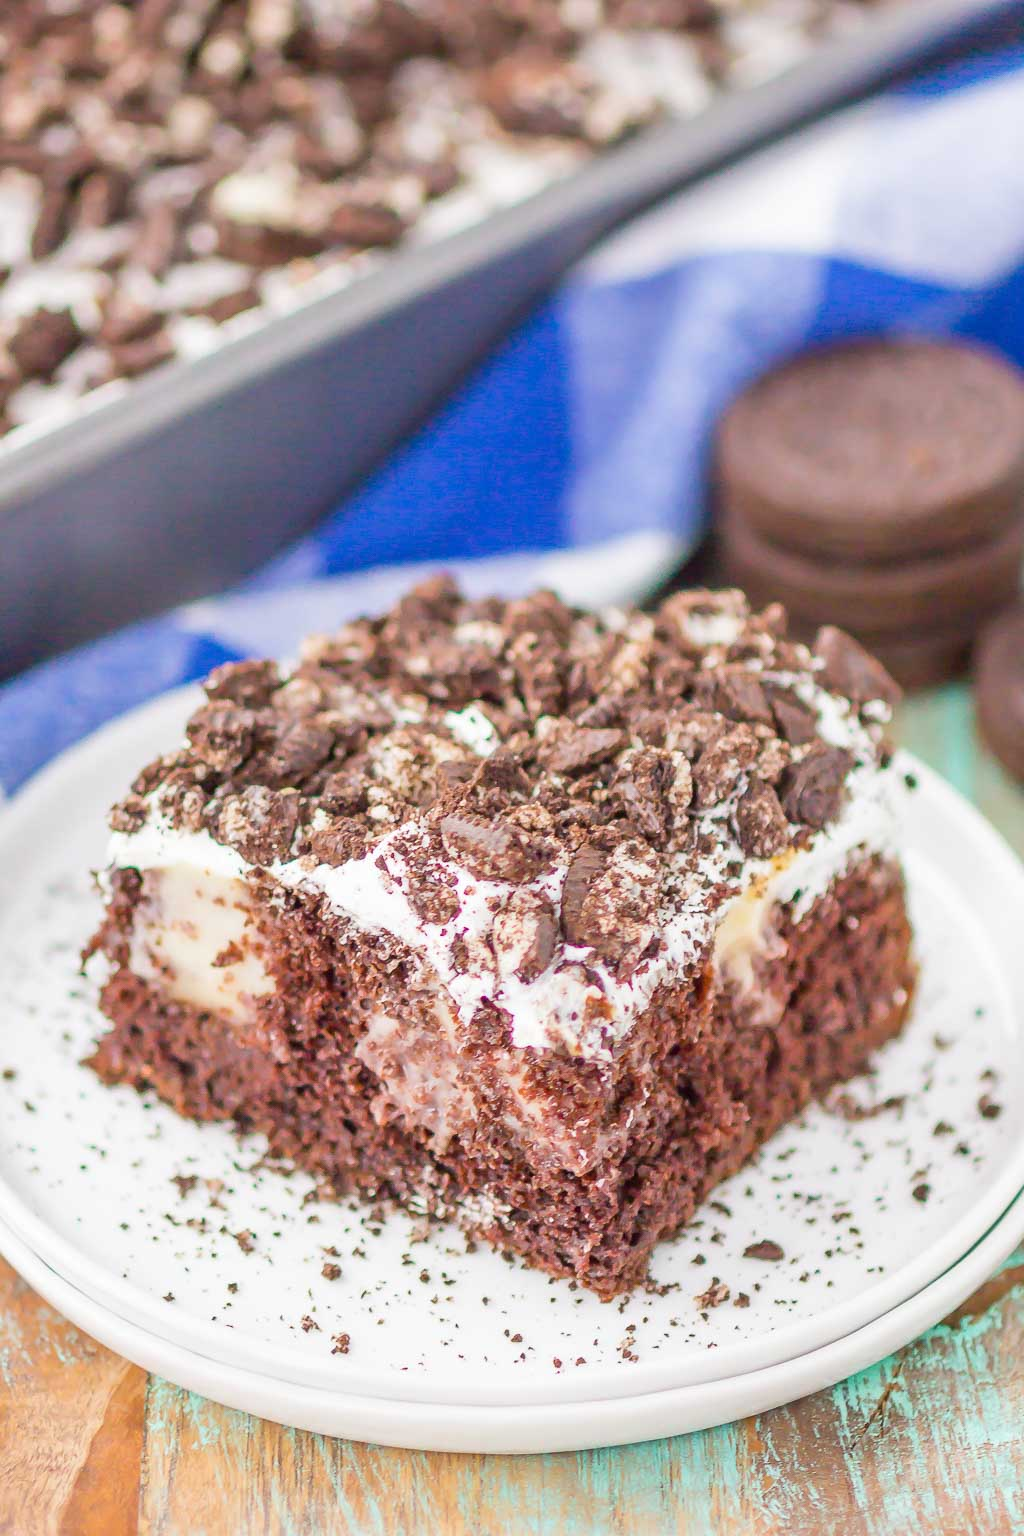 Oreo Pudding Poke Cake is chocolatey, fluffy, and simple to make. A fudgy cake is loaded with white chocolate pudding and studded with a creamy whipped topping and lots of Oreo cookies. The easiest, most delicious cake!